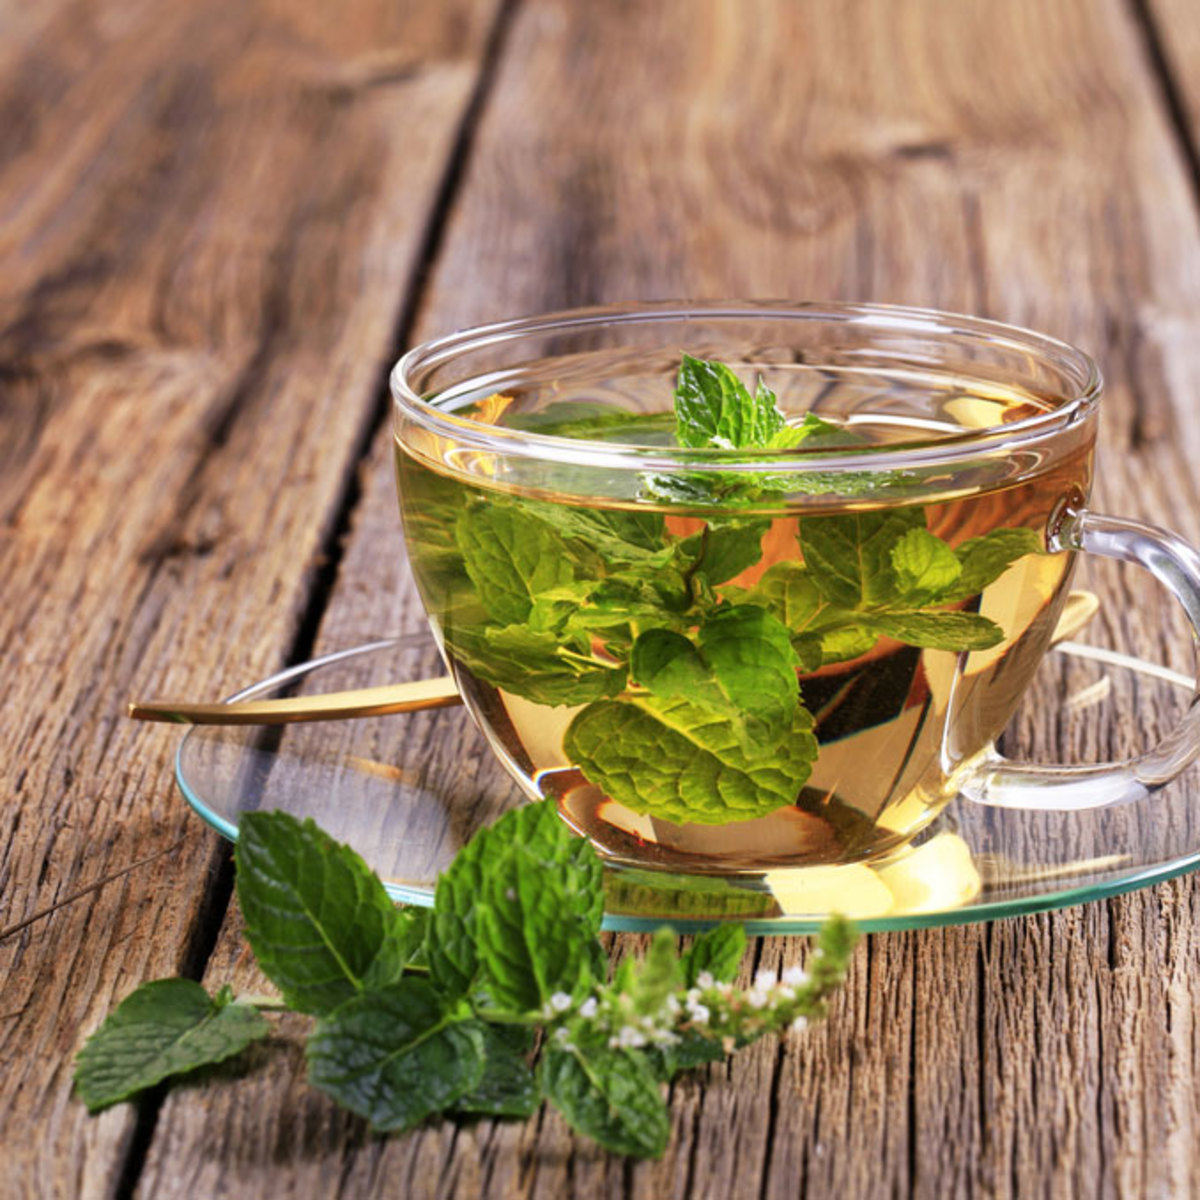 Healing and Delicious Herbal Teas to Blend at Home